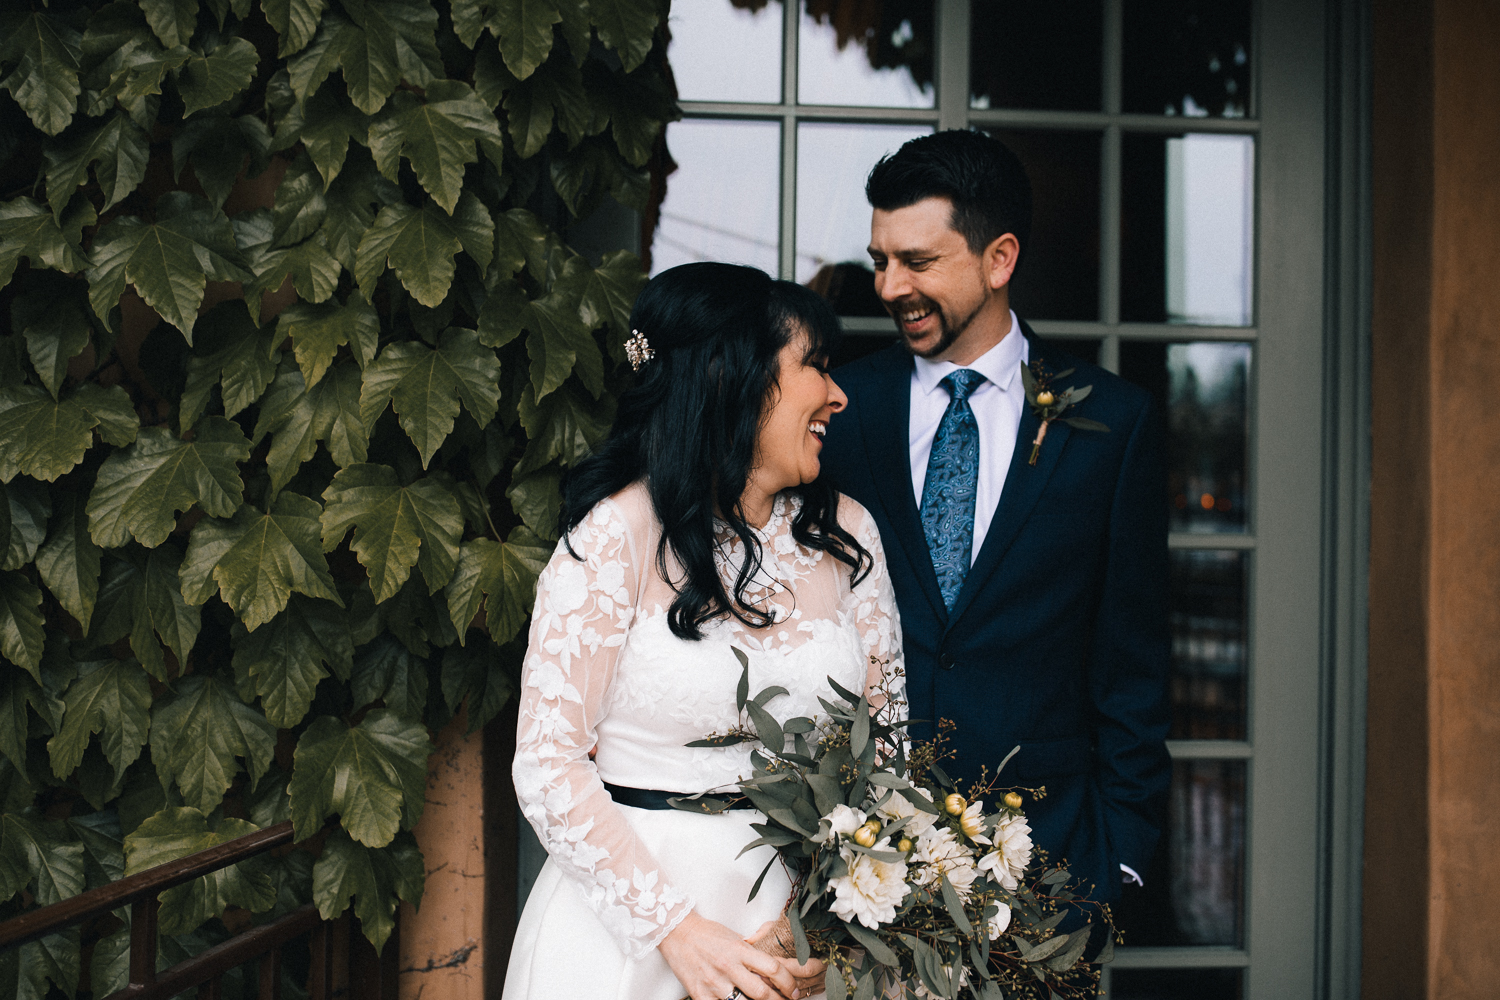 2019_05_ 182019.05.19 Lisa + Eddie South Bay Wedding Blog Photos Edited For Web 0077.jpg